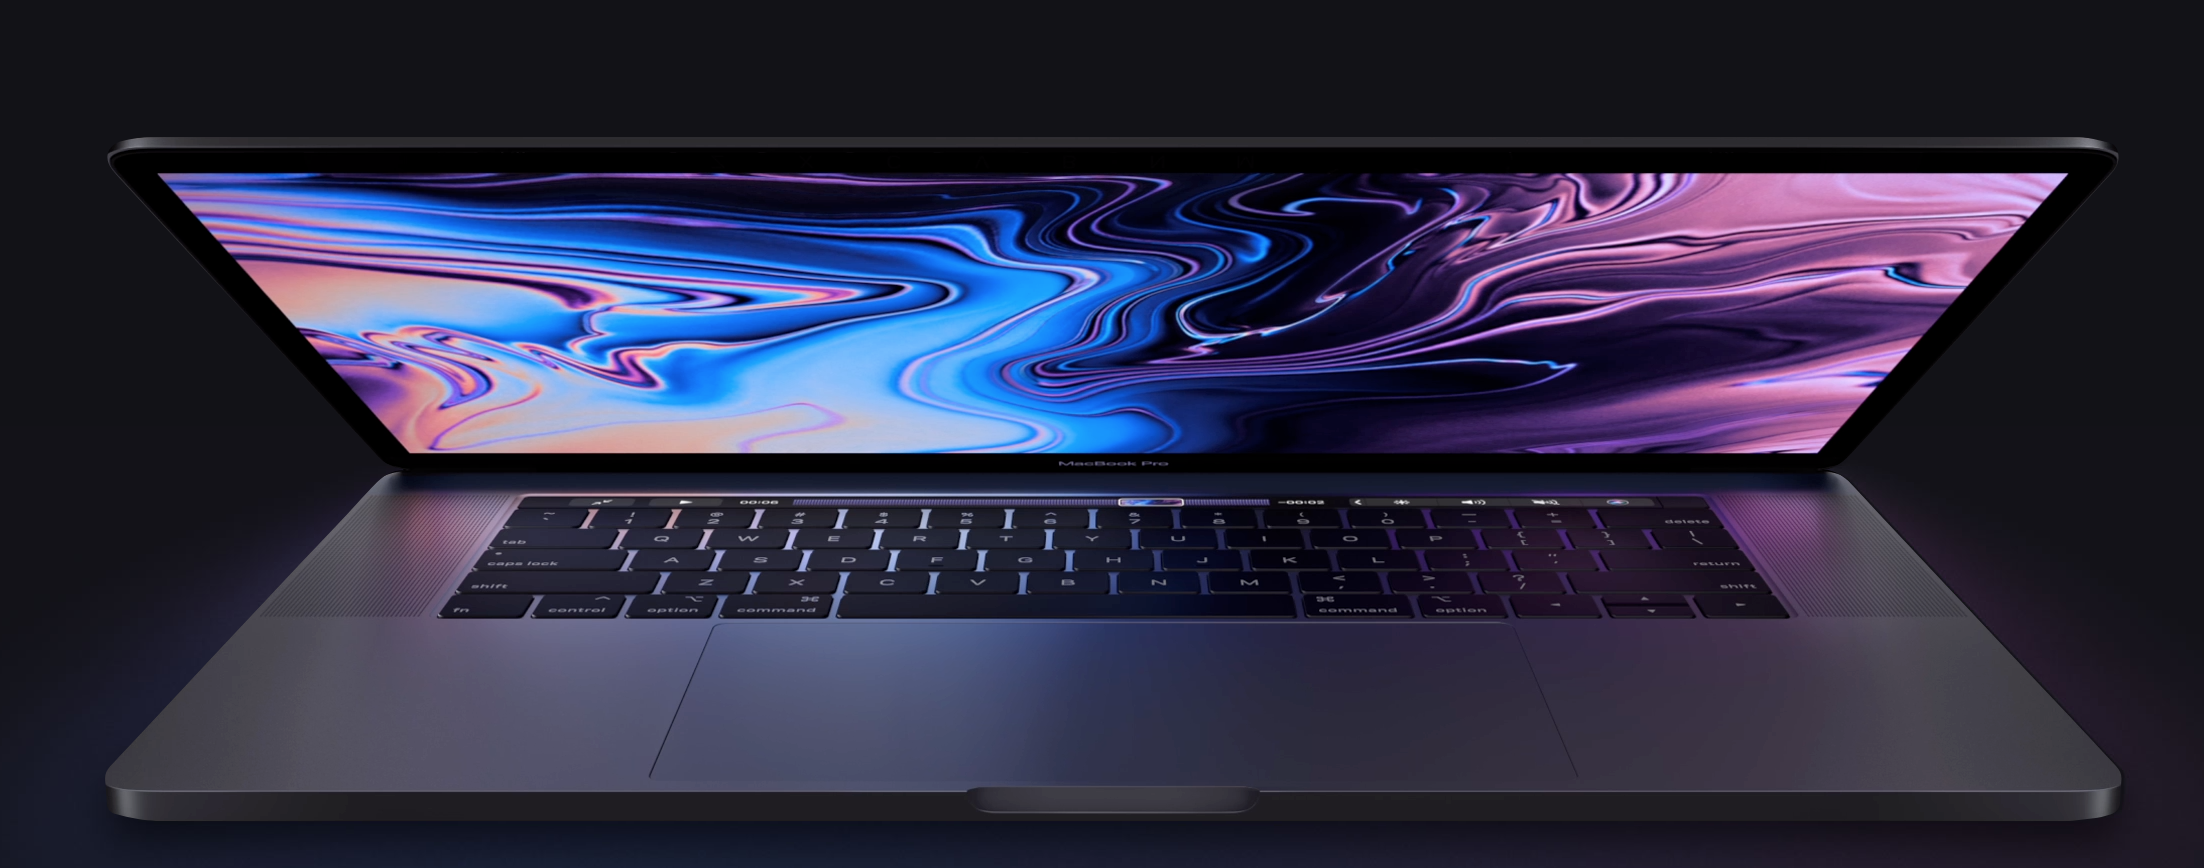 MacBook Pro 15in Touch Bar MR932 Space Grey- 2018.png